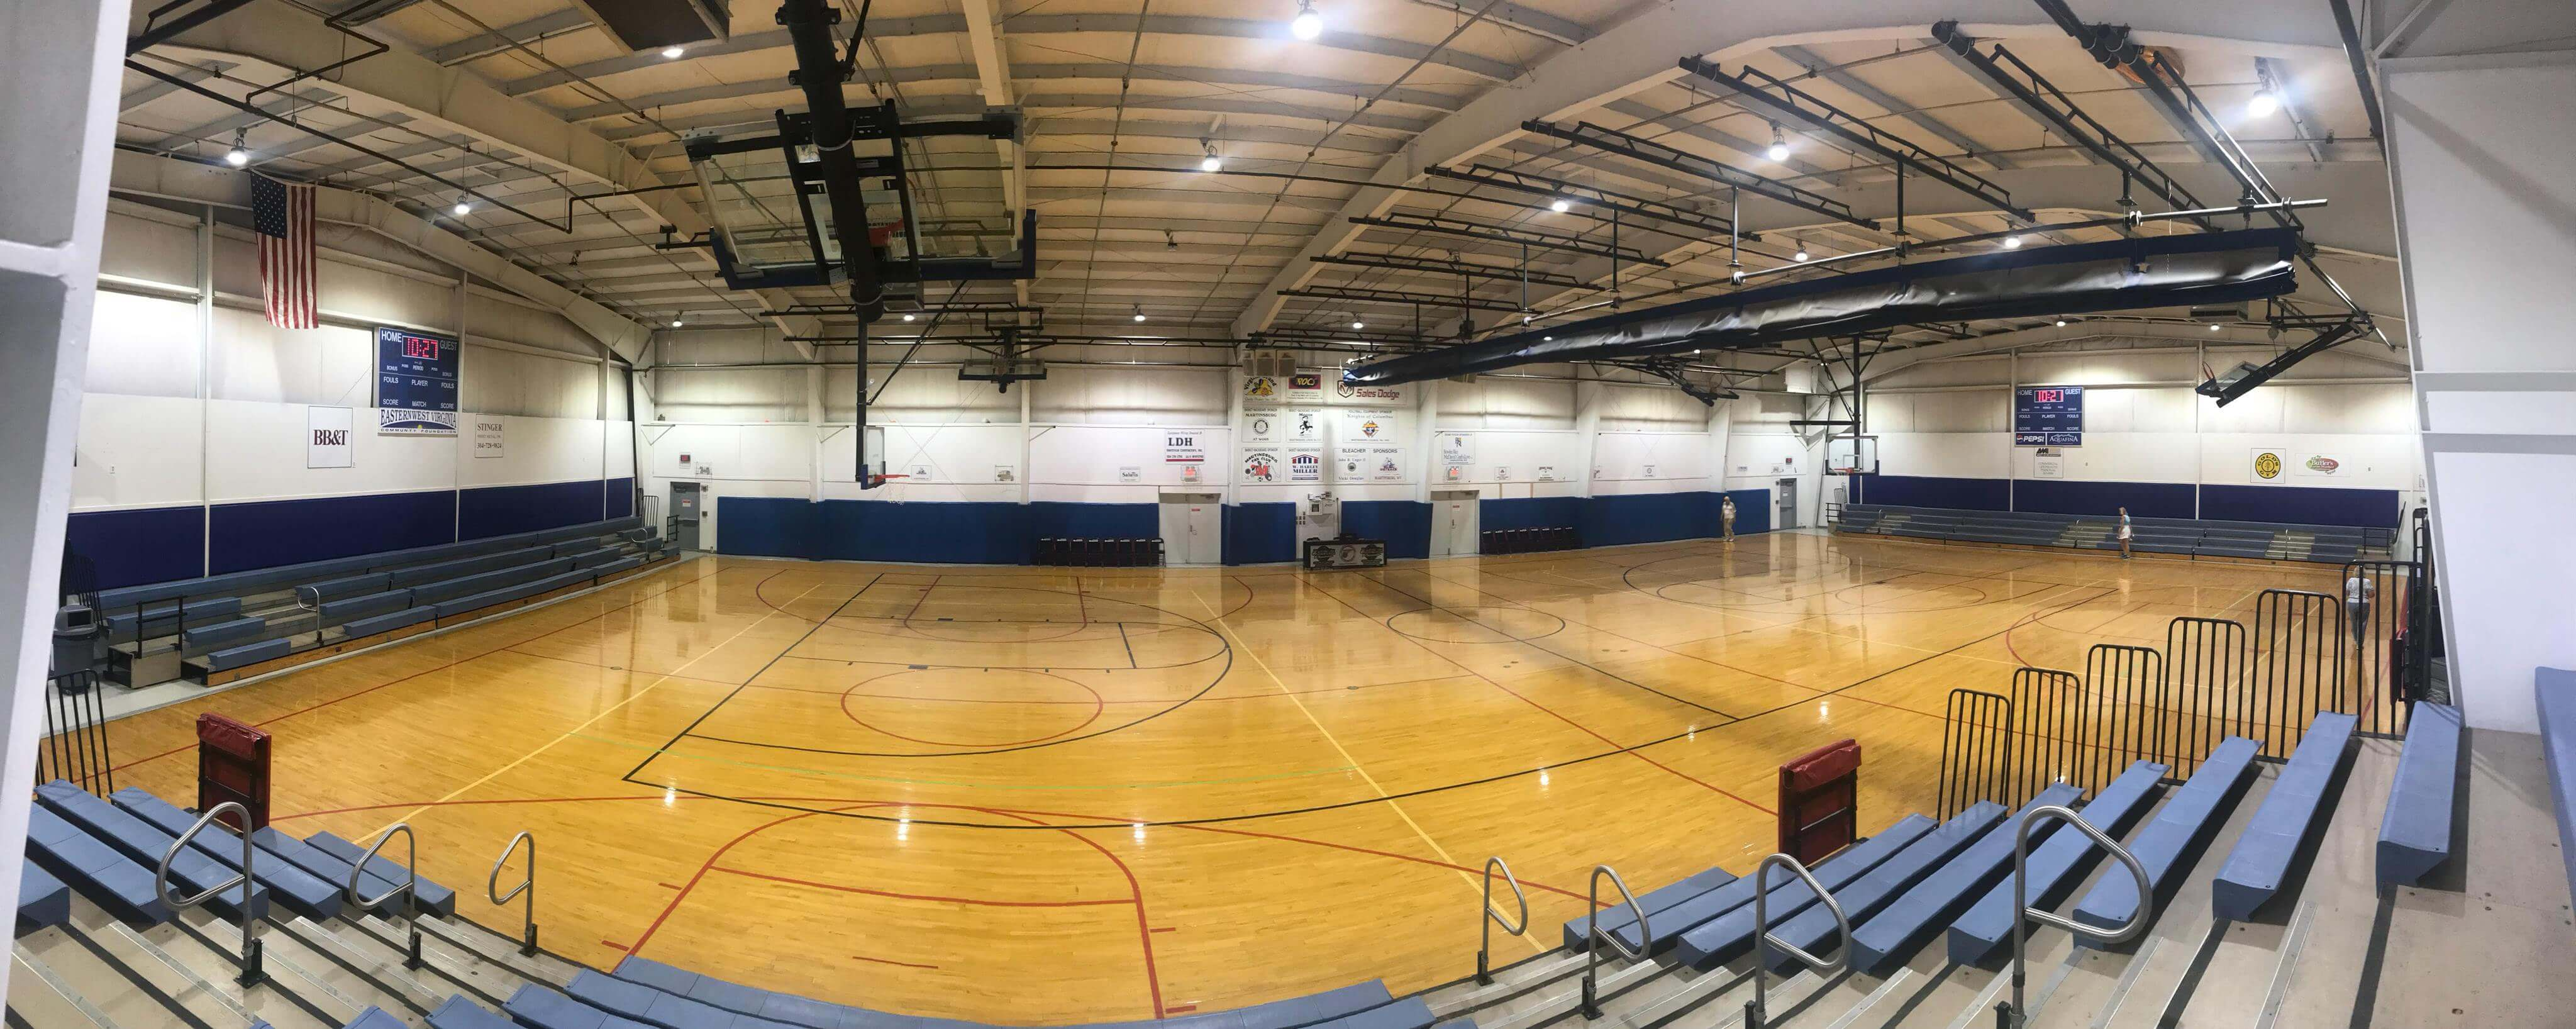 martinsburg-berkeley-berkeley-2000-Main Gym 2